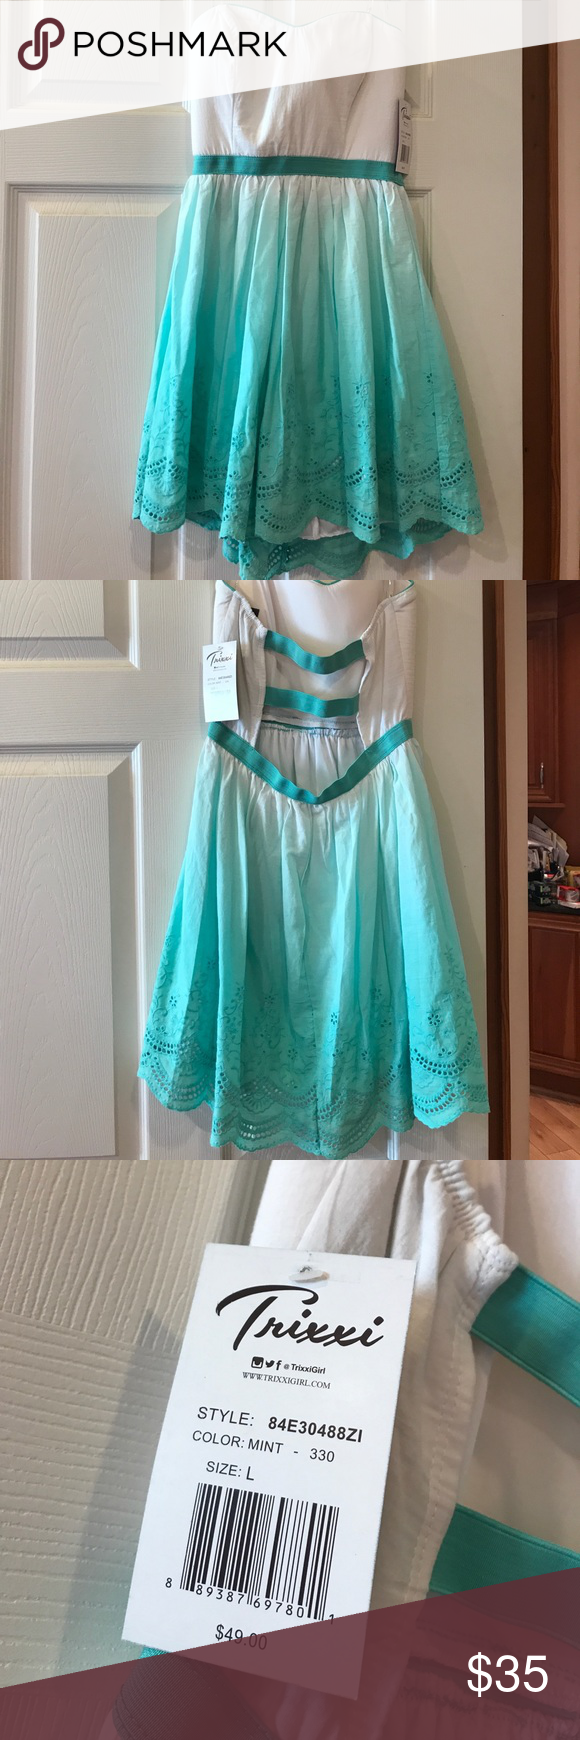 The dress is white - White And Mint Green Ombr Dress Nwt